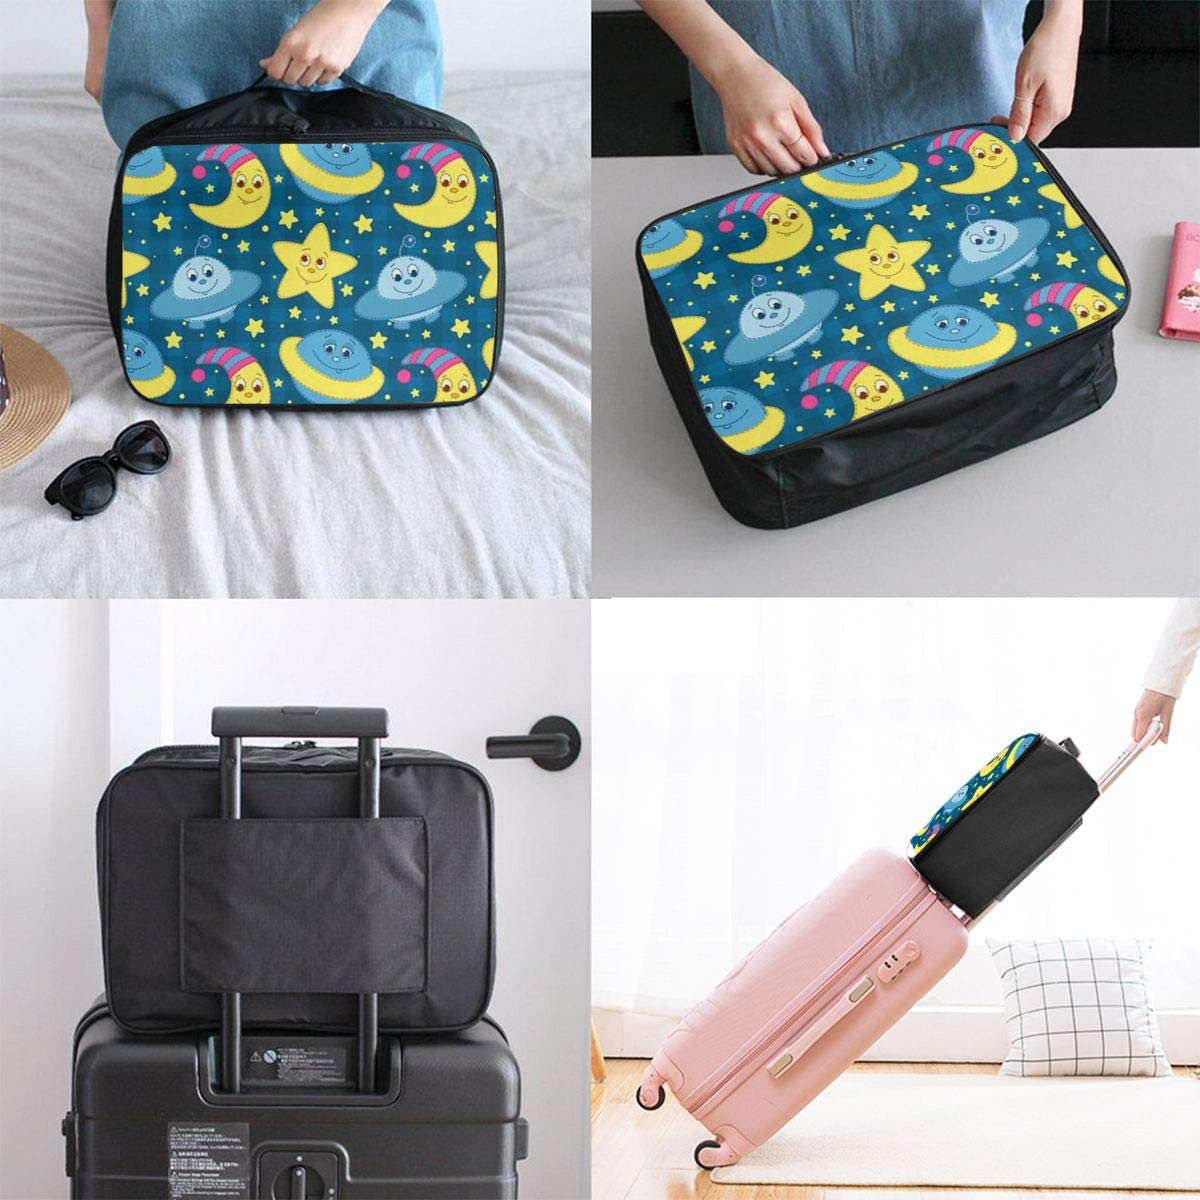 Lightweight Large Capacity Portable Luggage Bag Cute Moon Star Travel Waterproof Foldable Storage Carry Tote Bag